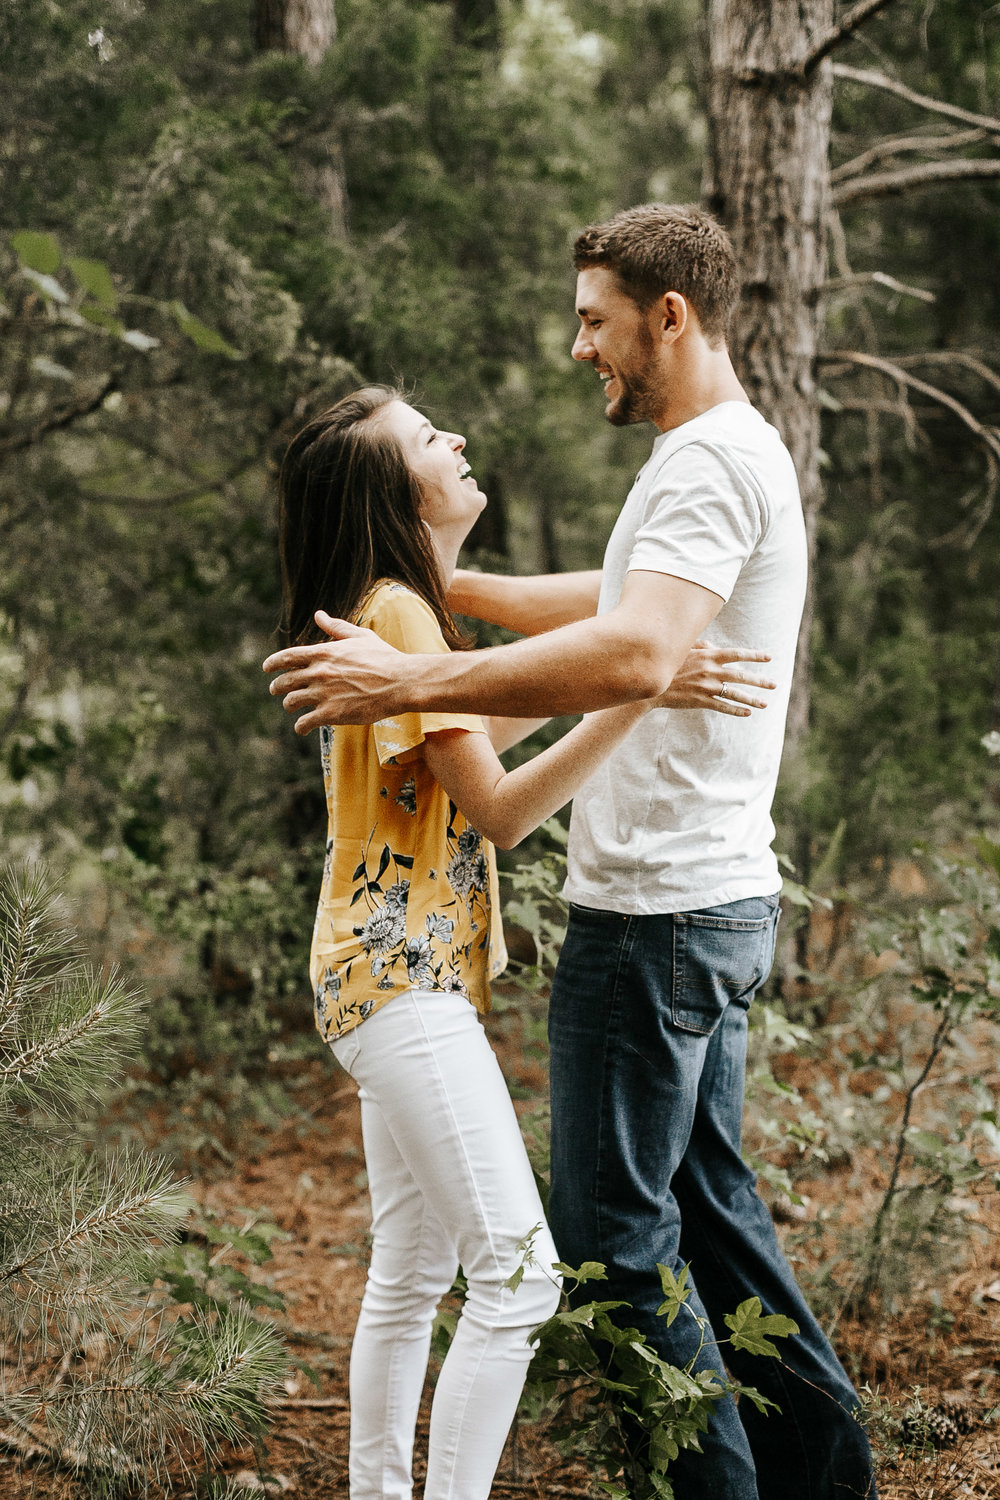 bohemian-engagement-photographer-carolina-1.jpg